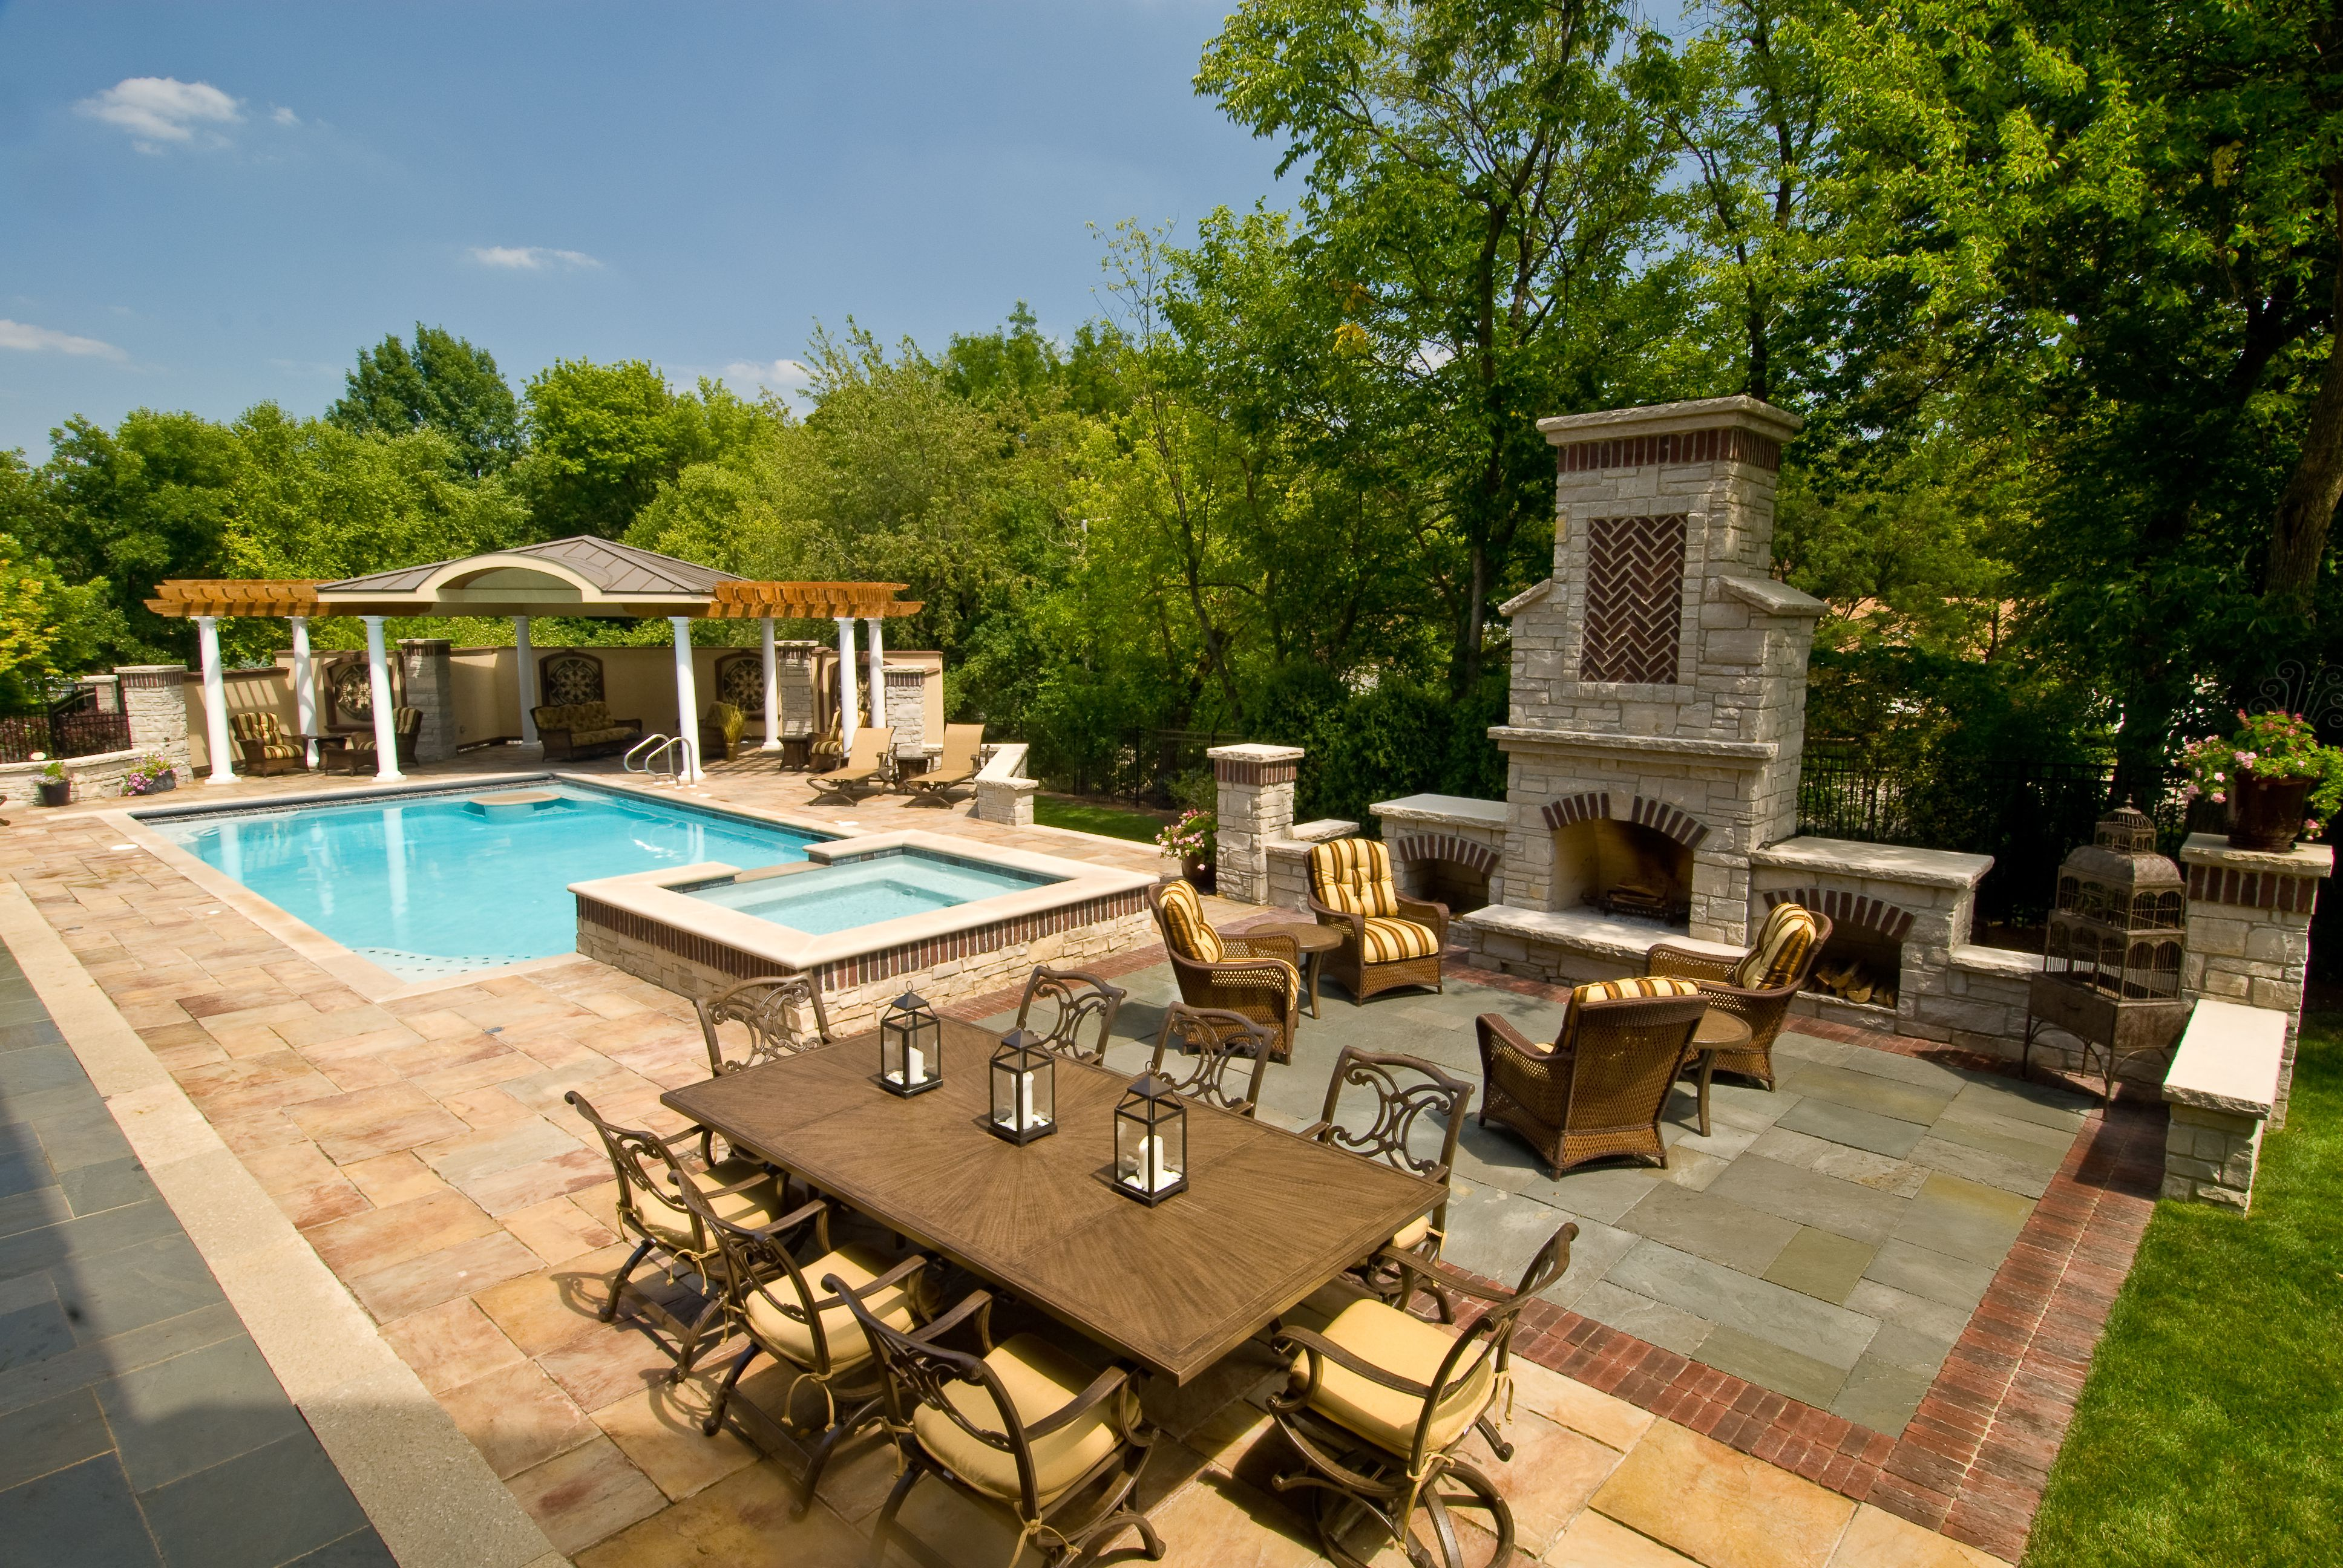 Complete Wide Backyard Landscaping Ideas with Outdoor Dining Table Set and Blue Swimming Pool